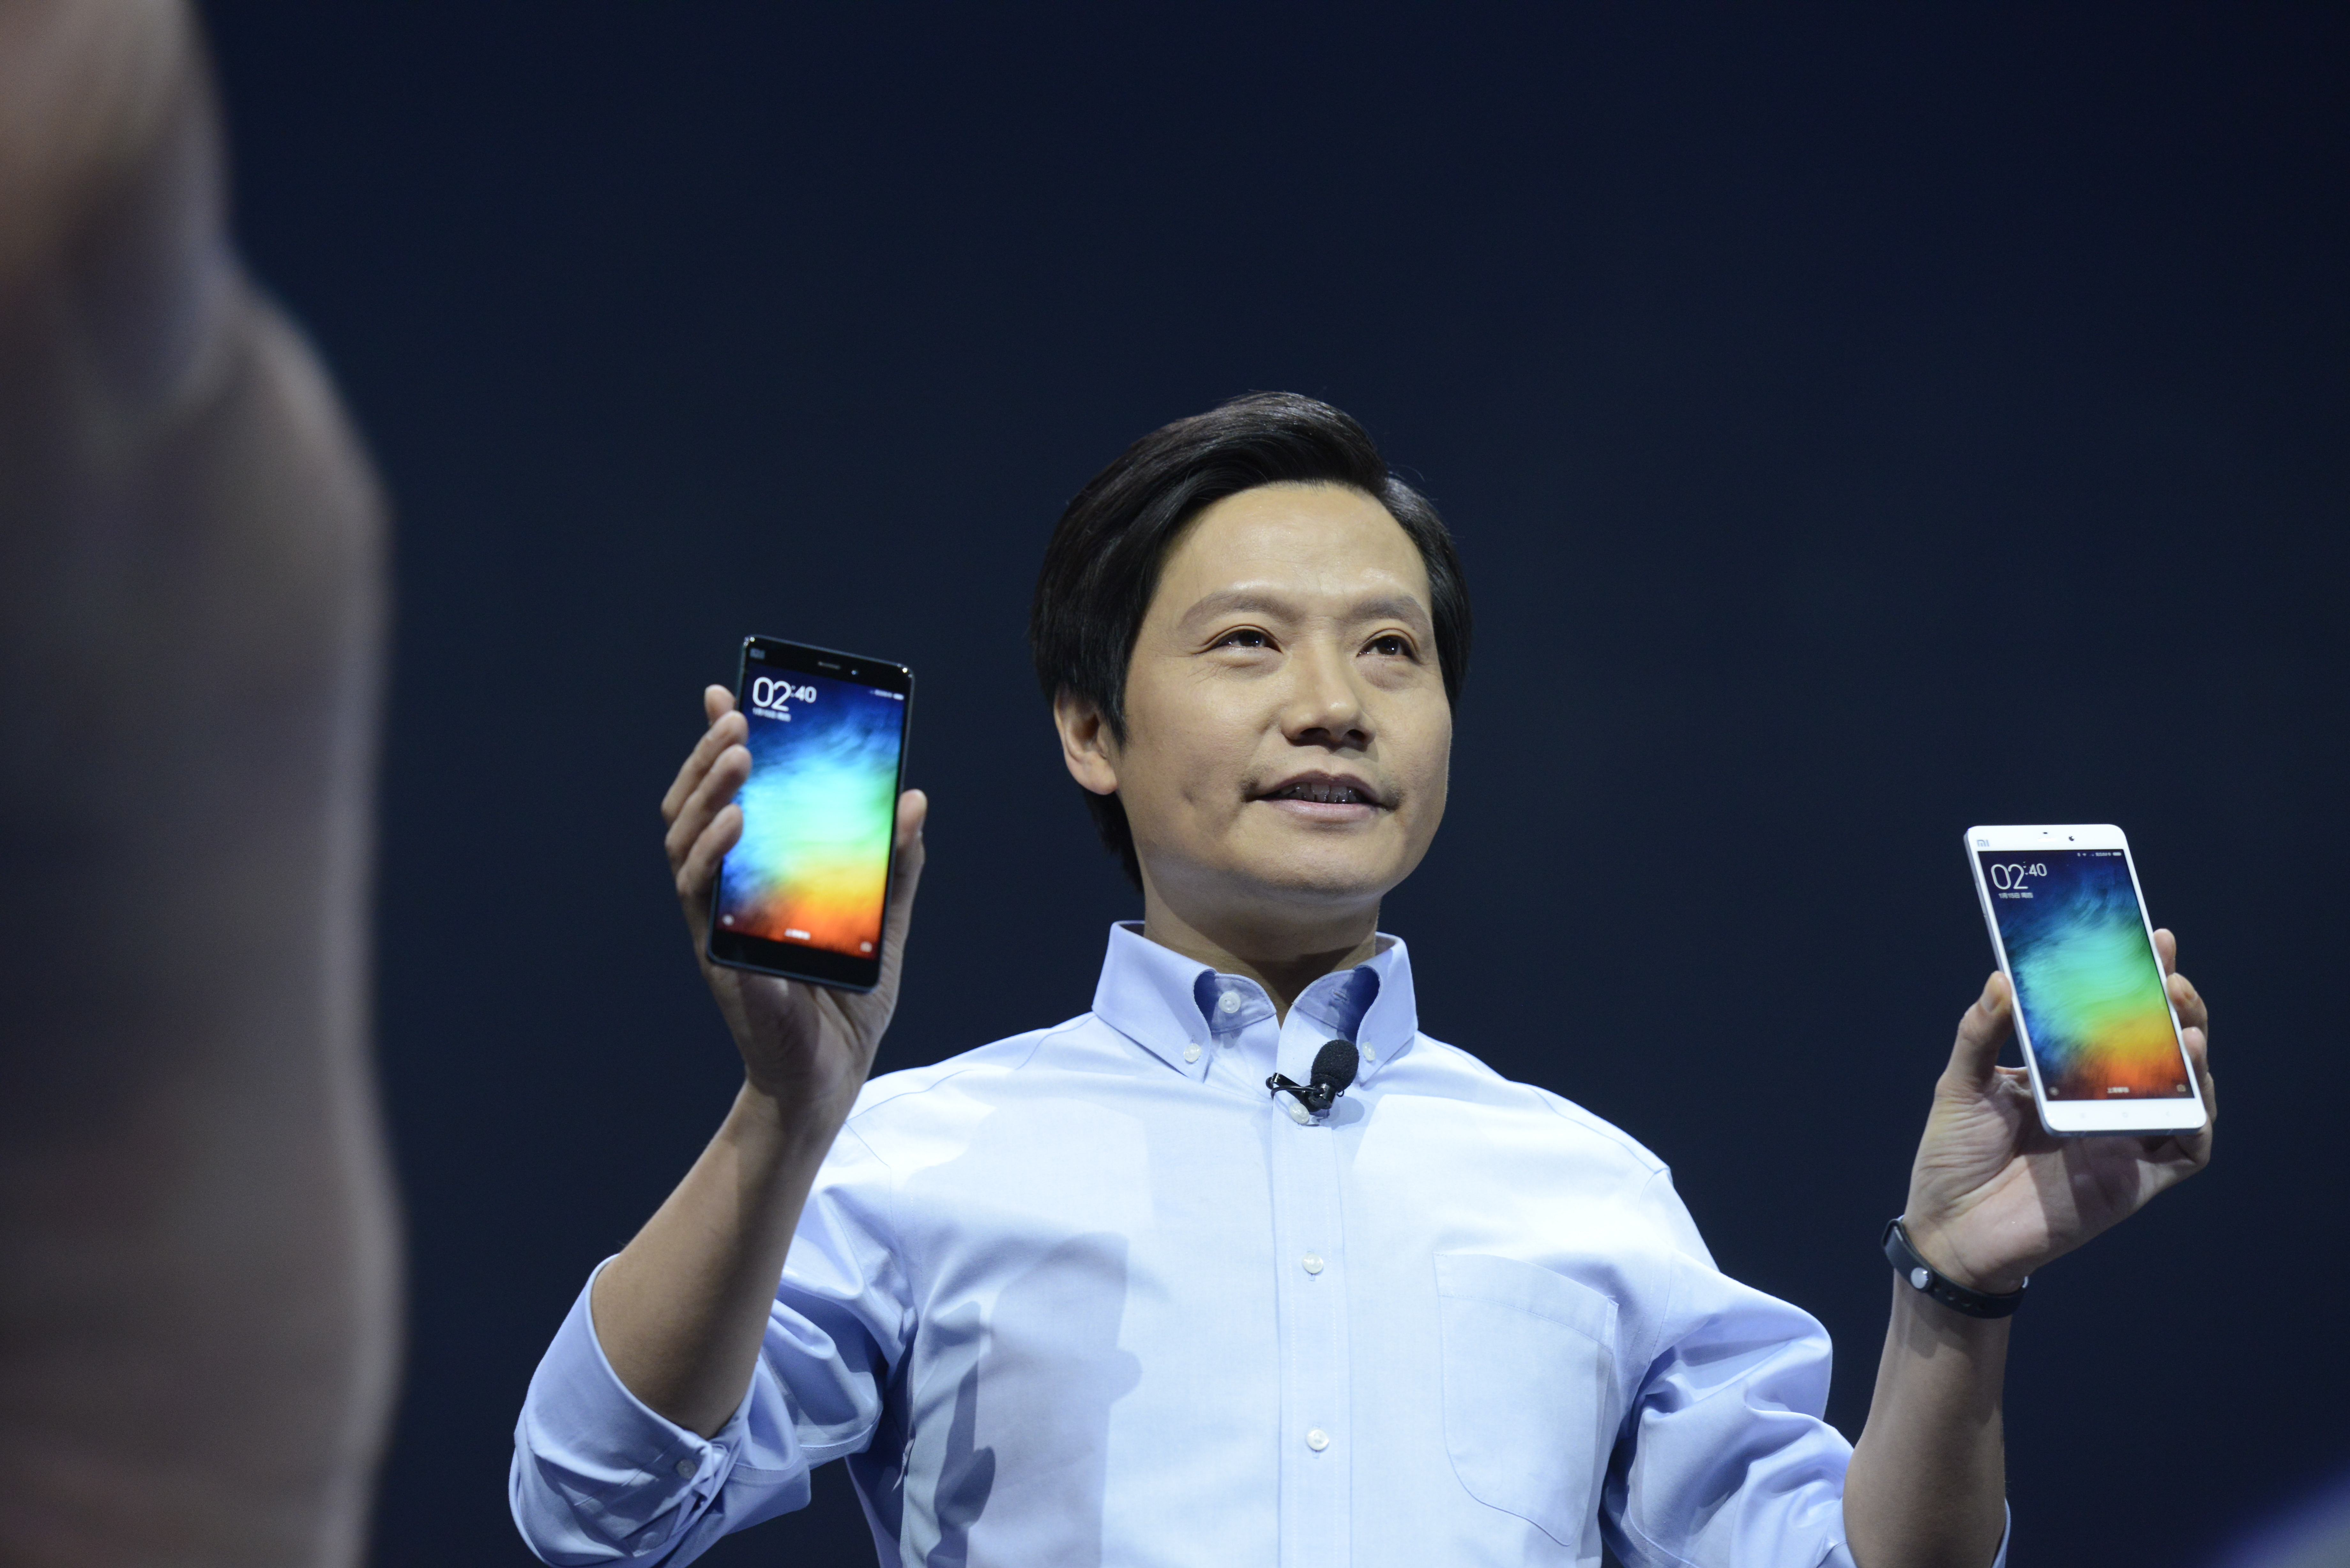 Lei Jun, chairman and CEO of China's Xiaomi Inc. presents the company's new product, the Mi Note on Jan. 15, 2015 in Beijing, China.